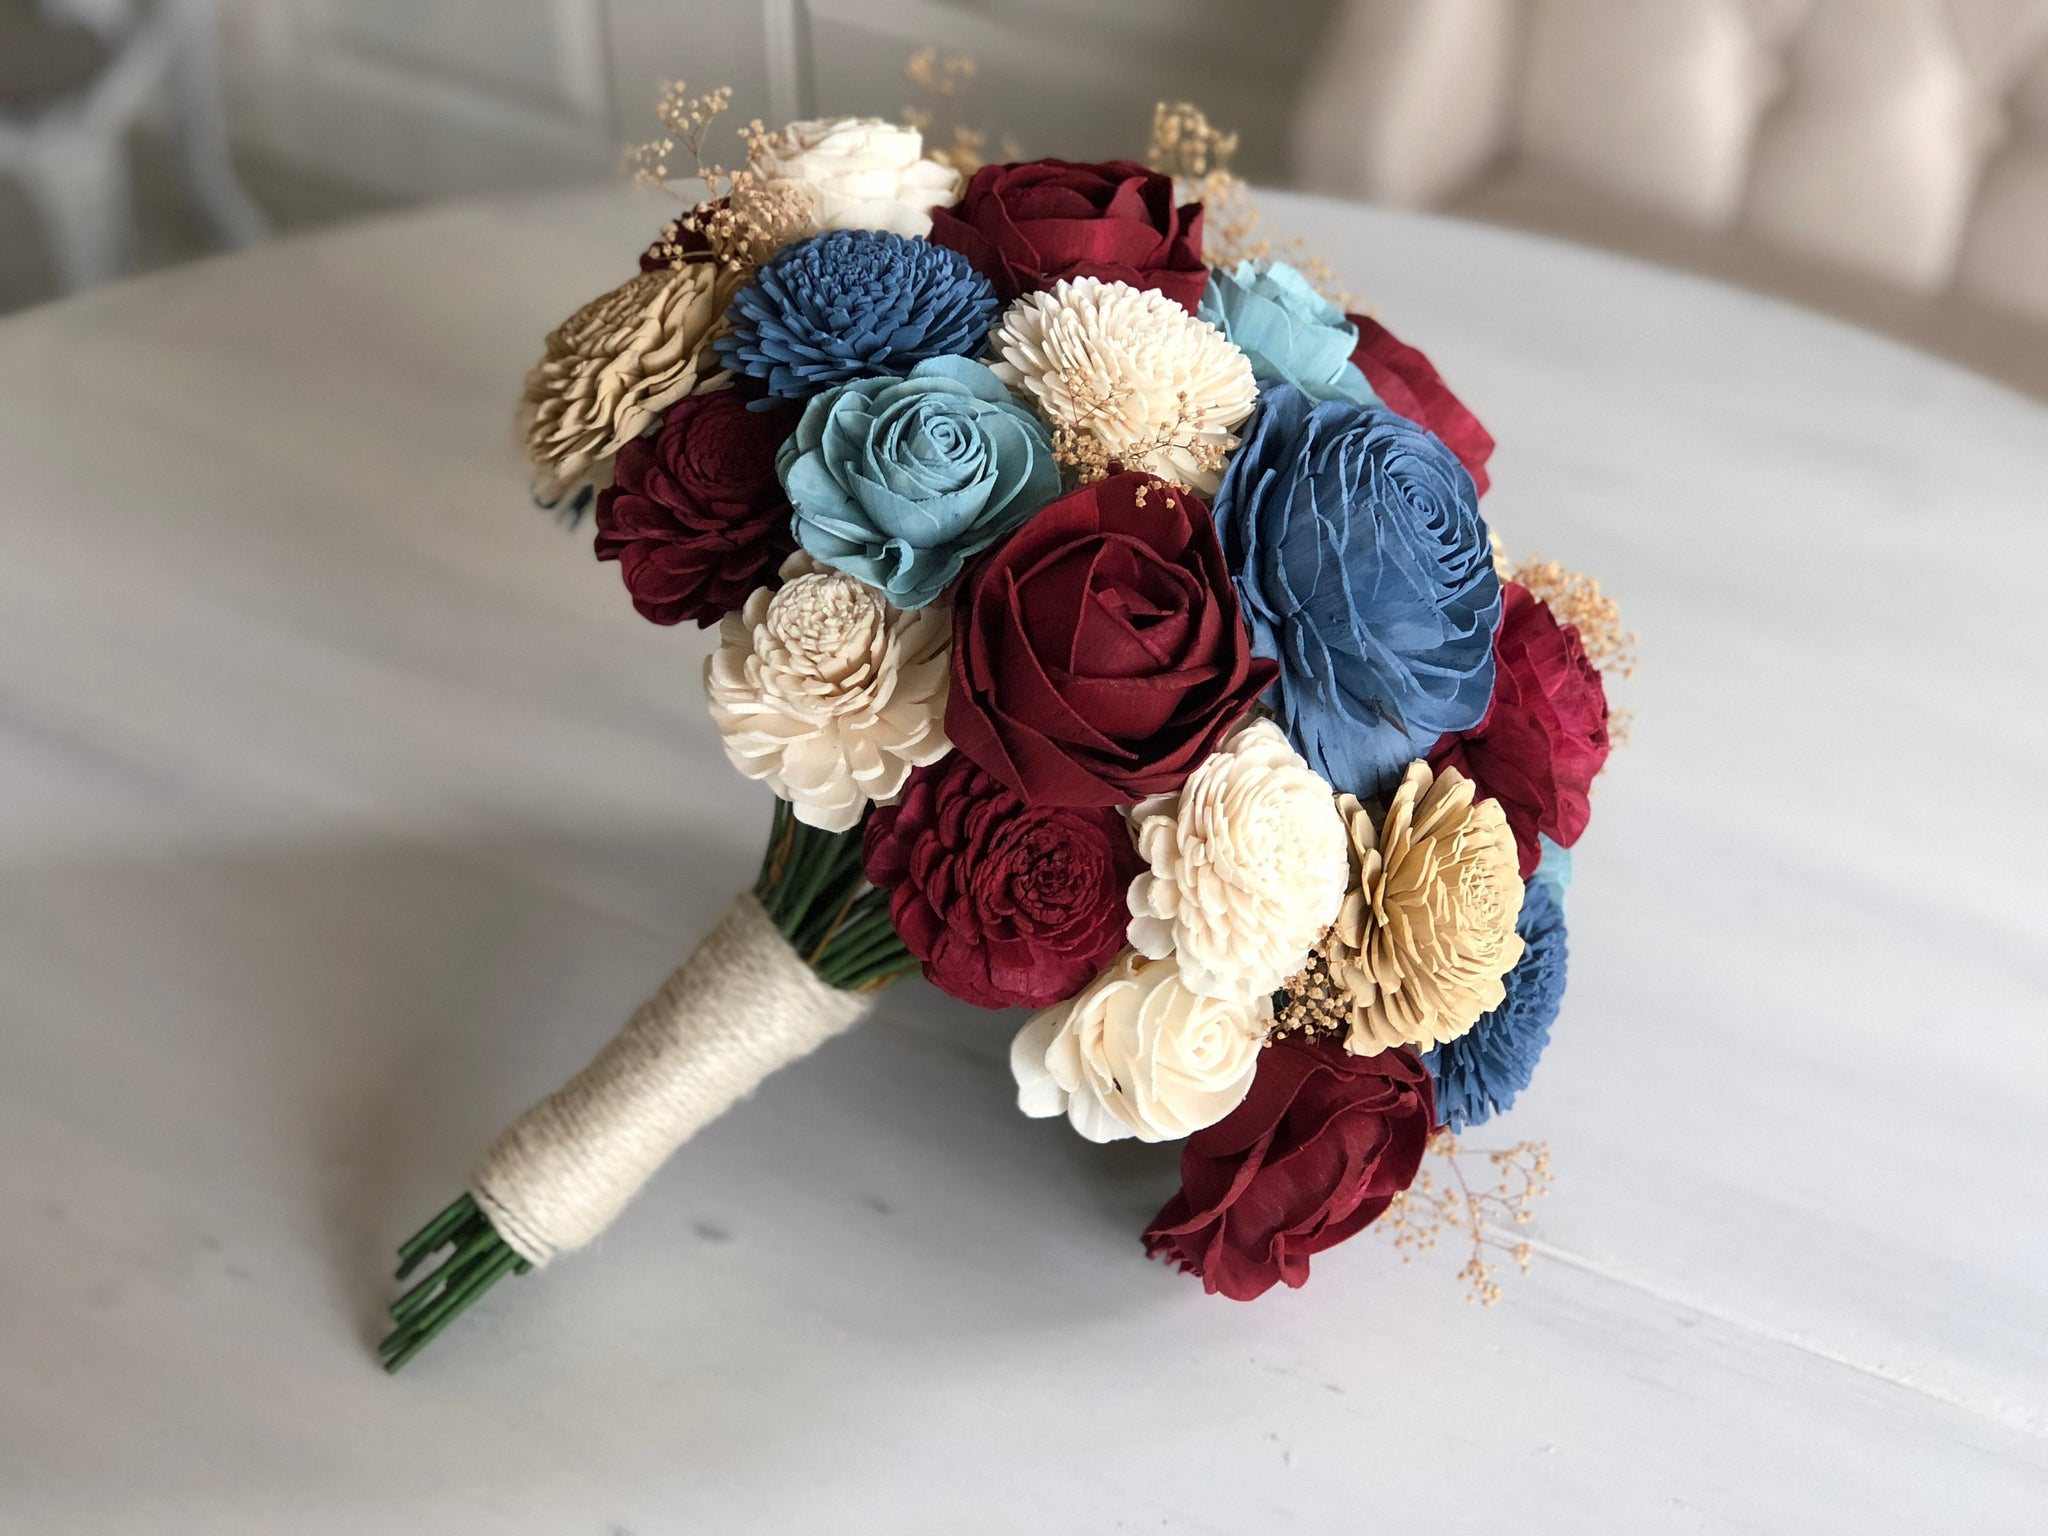 Heartland Bouquet - Wood Flowers - Sola Flowers - Blue and Burgundy -  Wedding Bouquet  - Wedding Flowers - Pine and Petal - Sola Wood